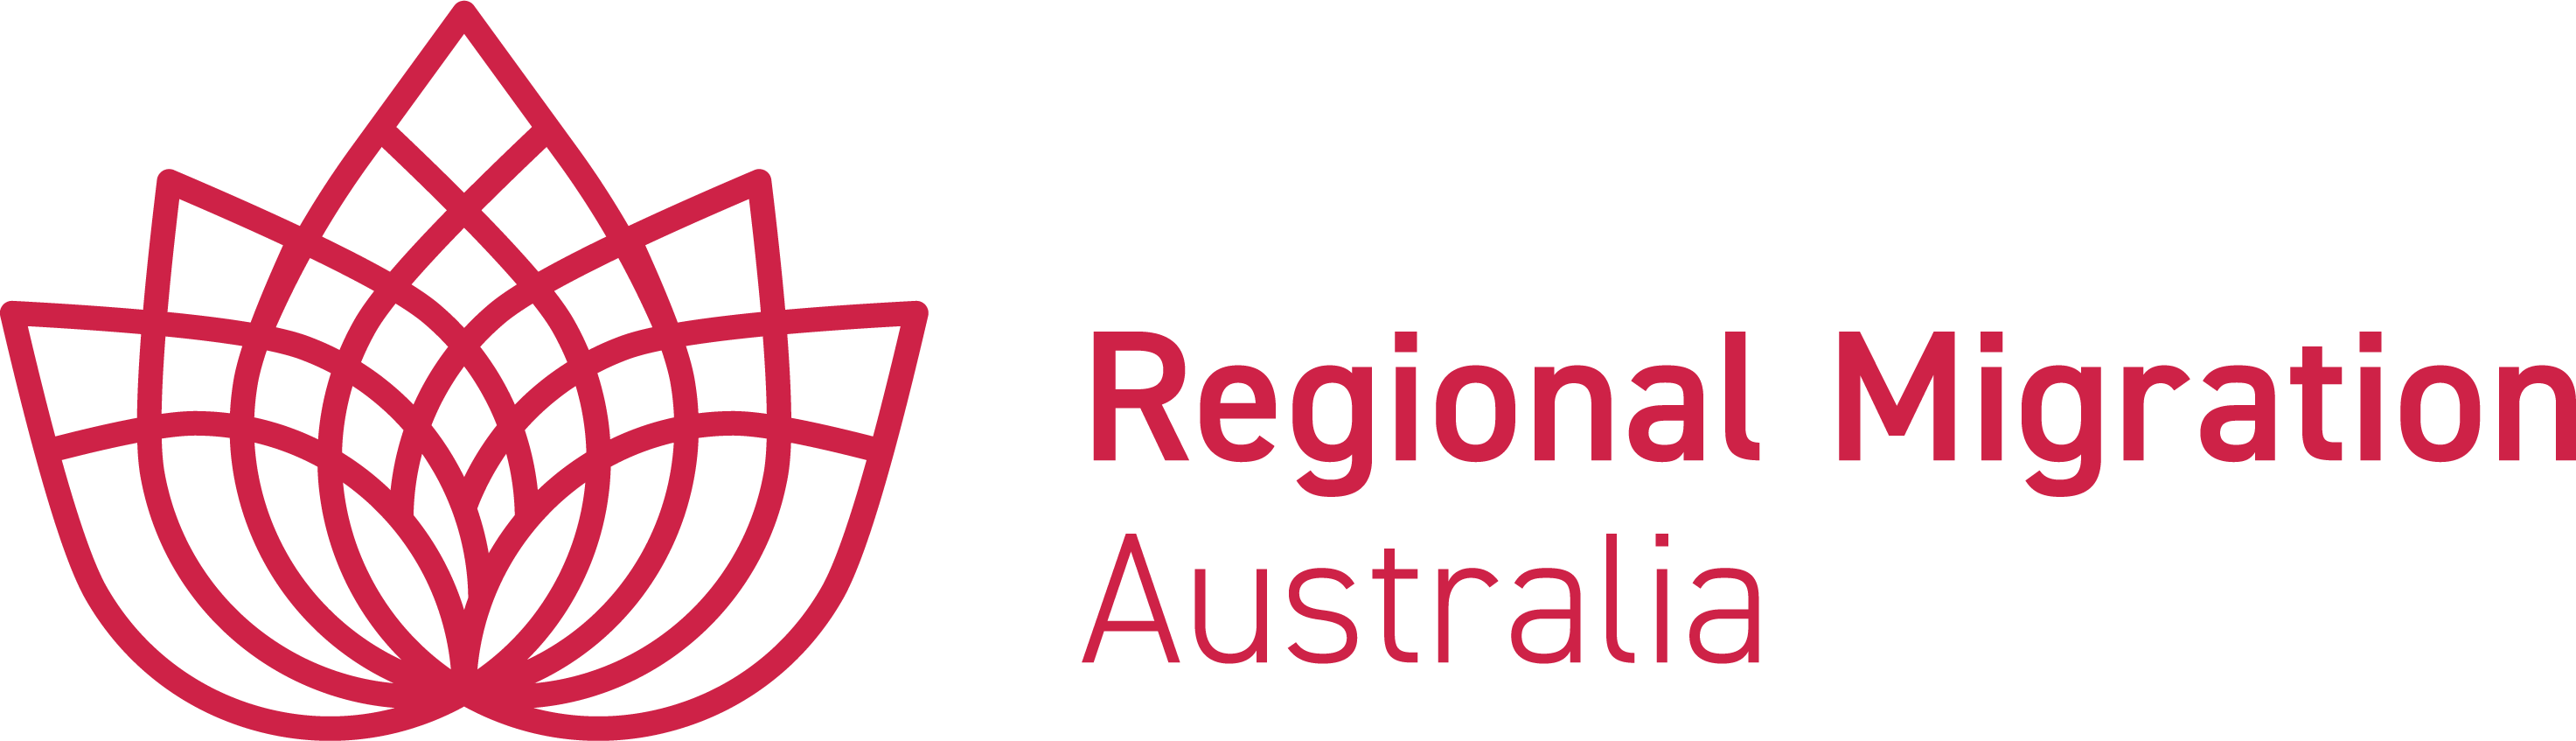 rma-regional-migration-australia-logo-full-color-rgb